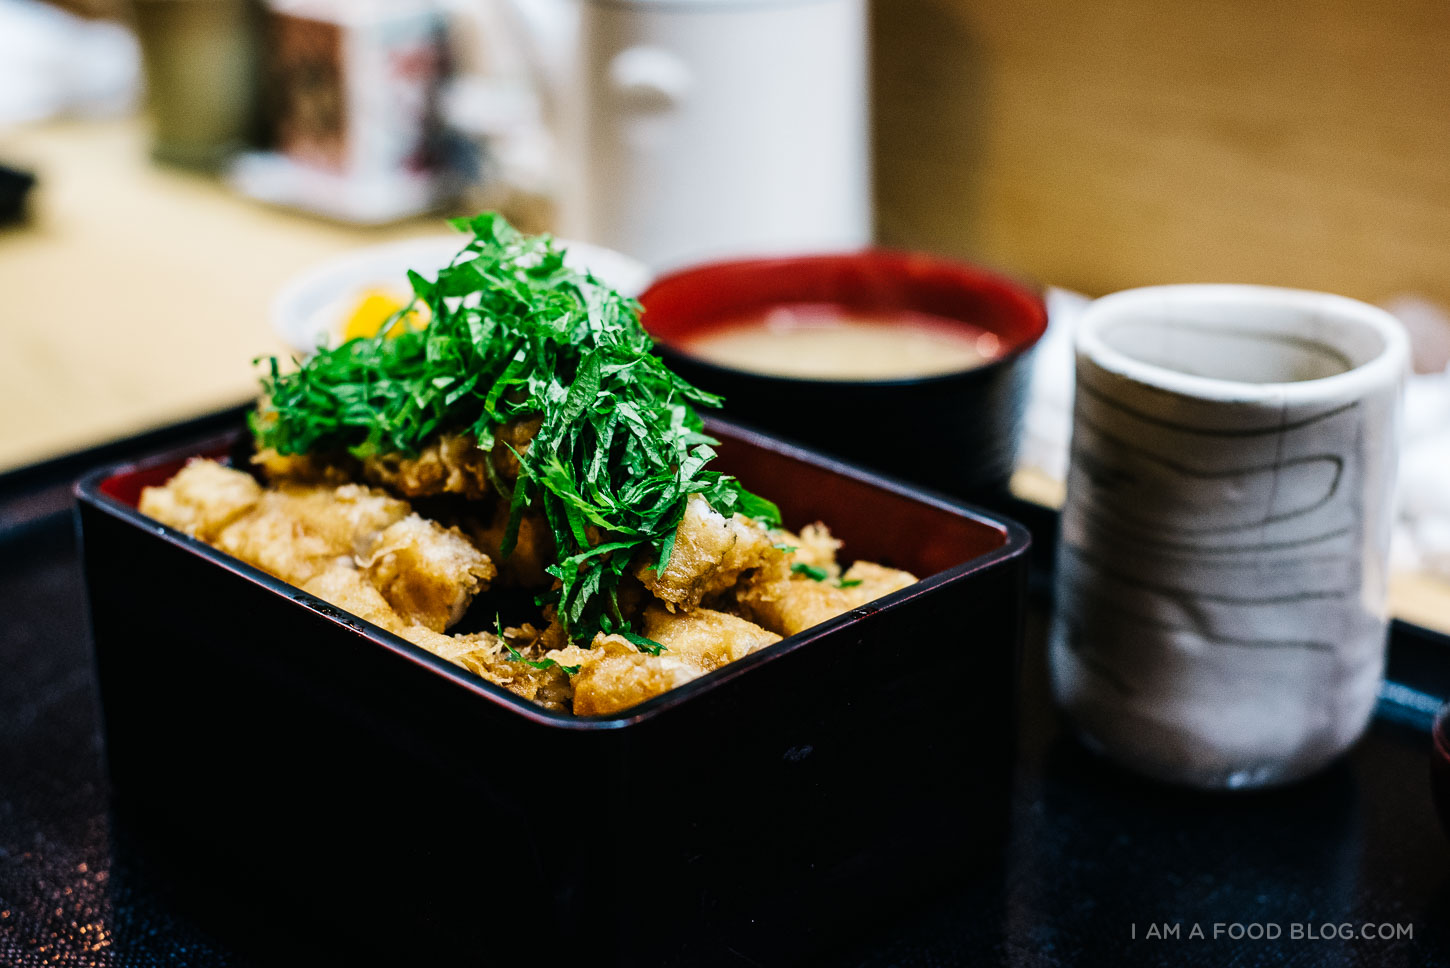 Tokyo food guide where and what to eat in tokyo i am a food blog iam3980 forumfinder Image collections